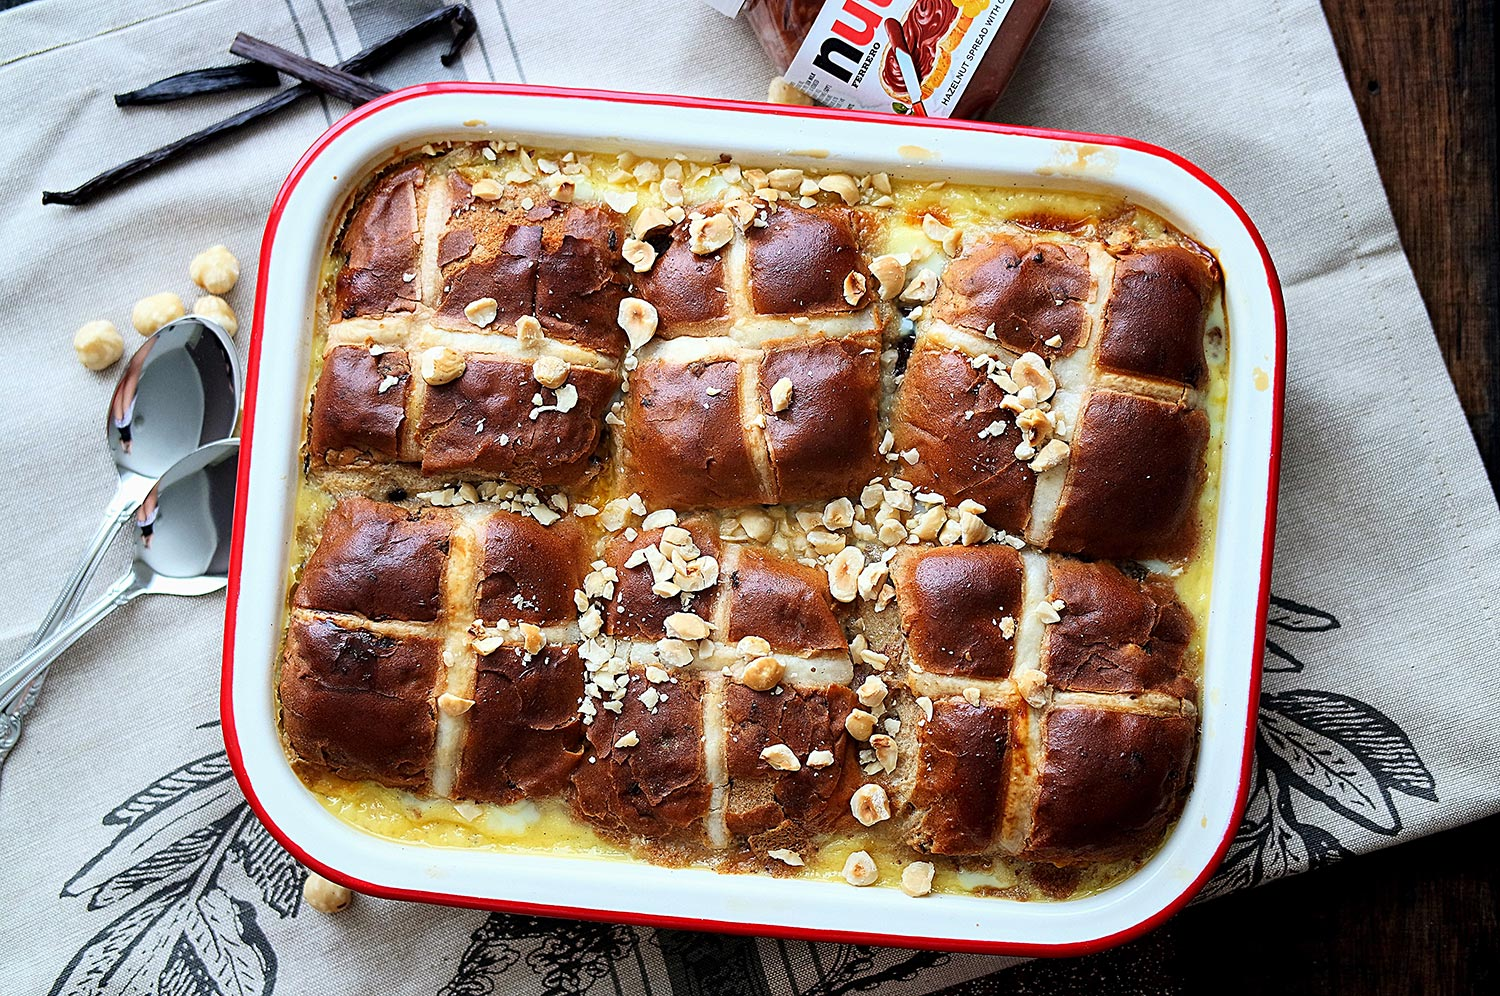 Nutella Hot Cross Bun Bread Pudding recipe - a great way to use up leftover hot cross buns from easter!